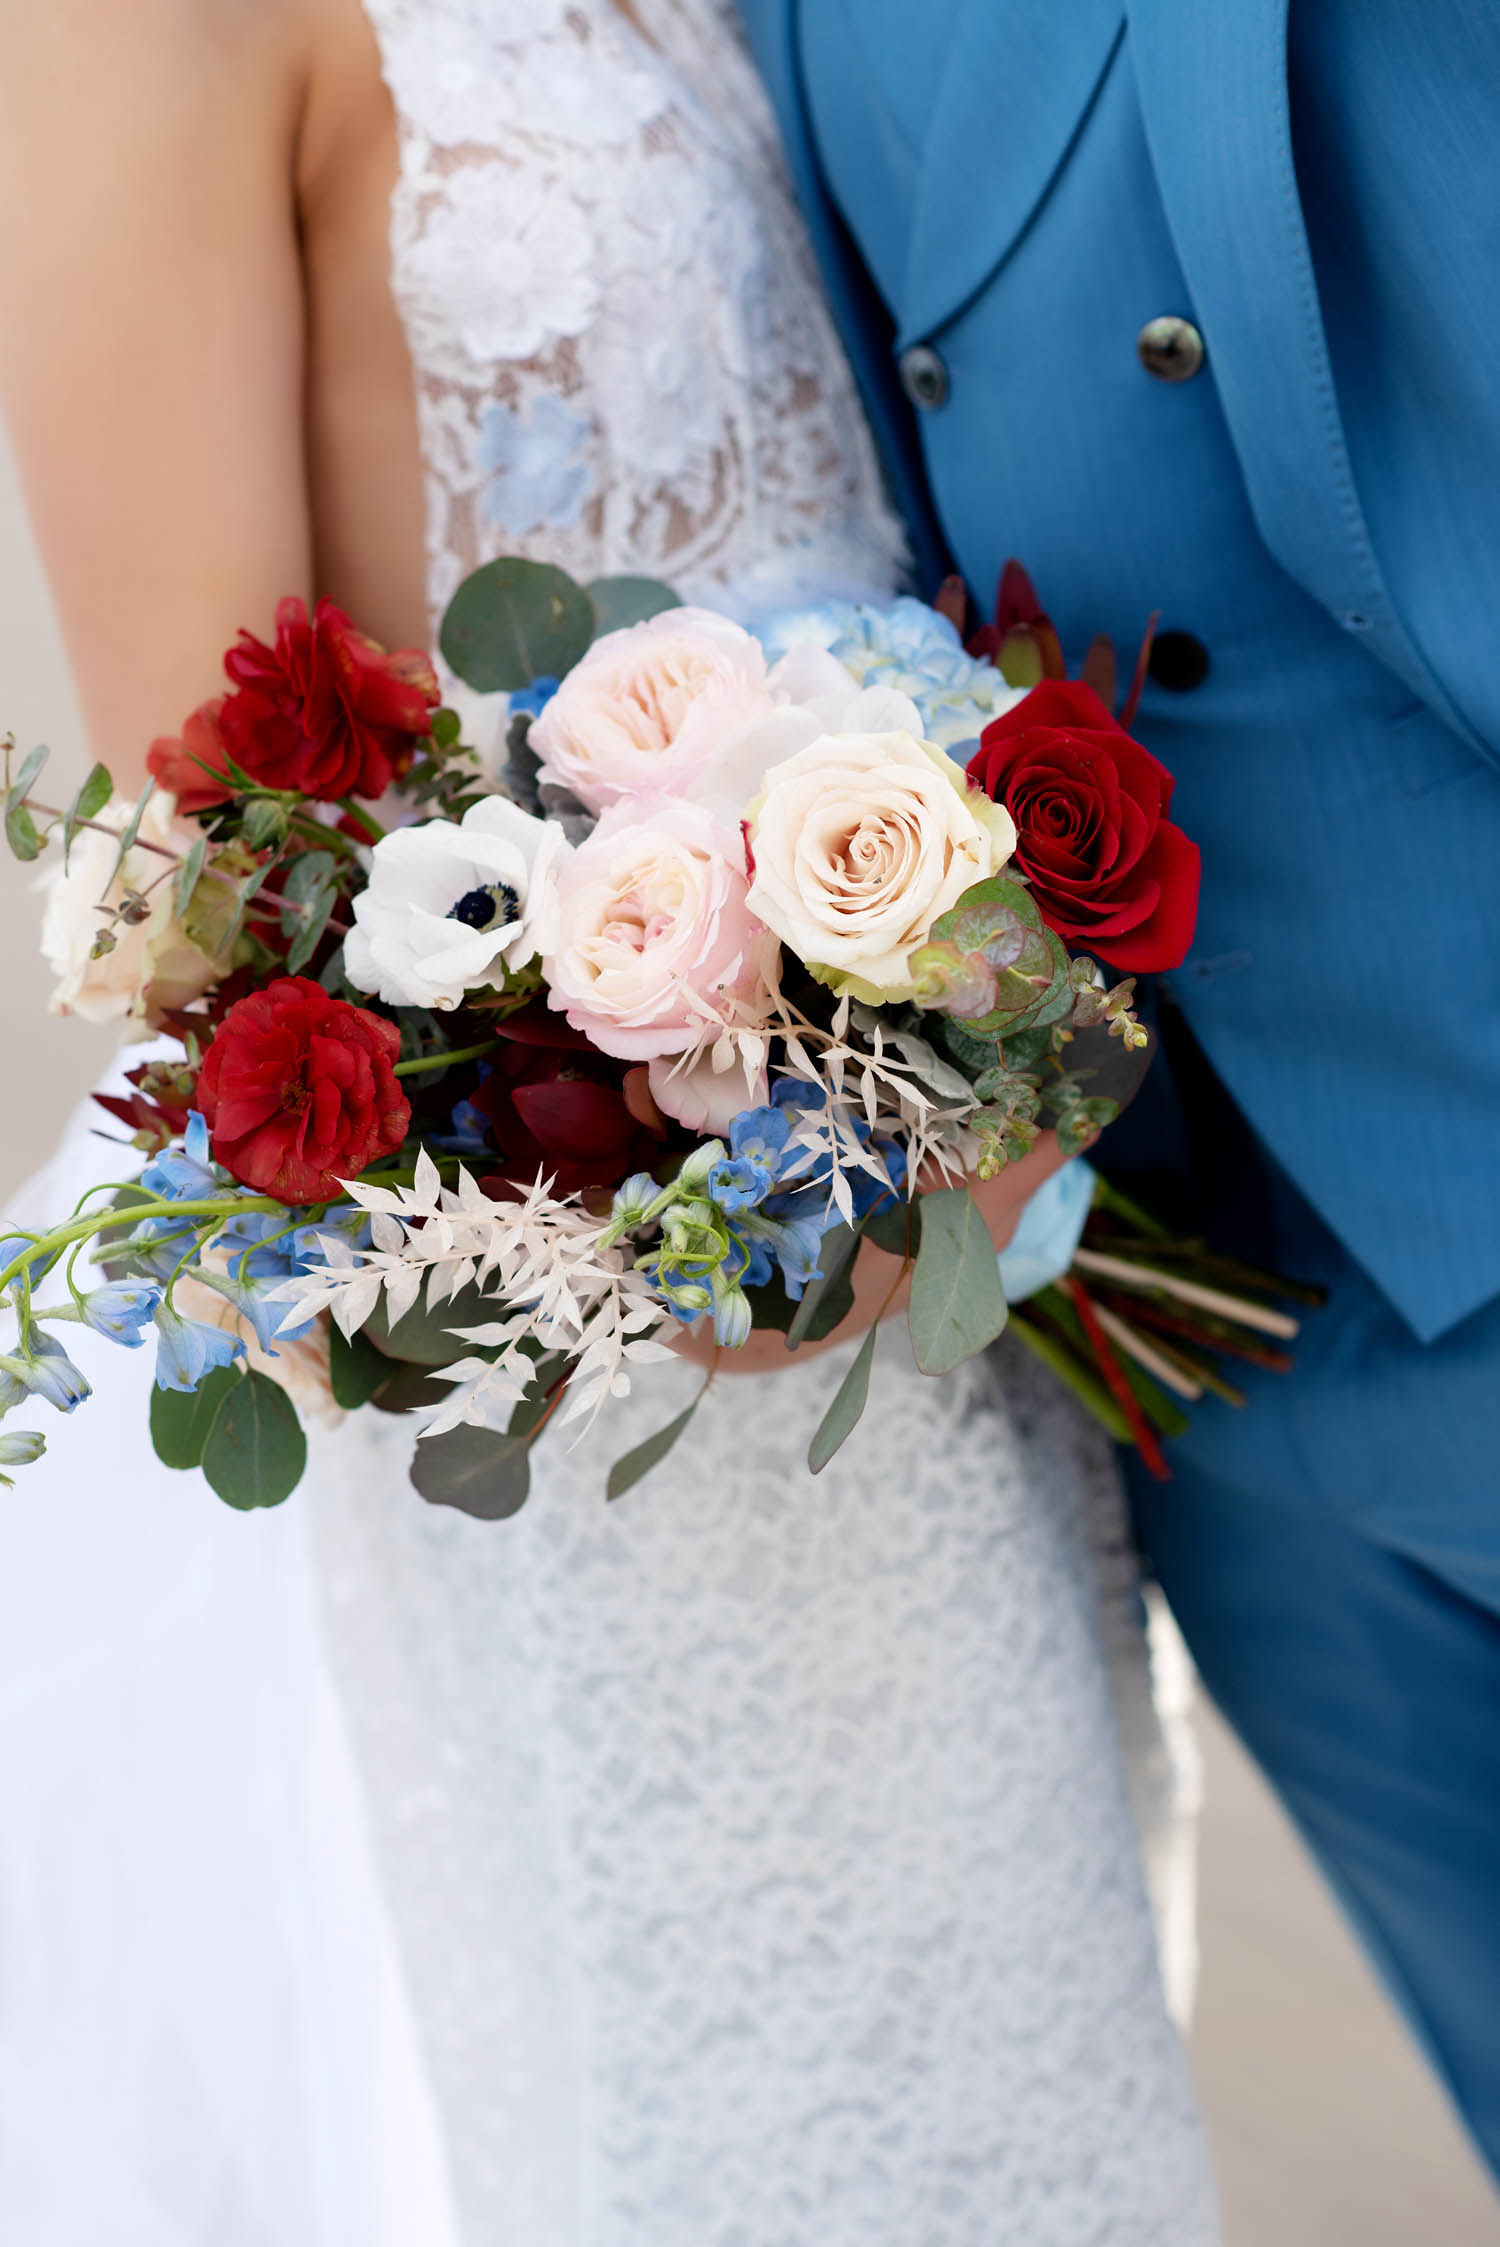 bridal bouquet, blush and red bouquet, blush red and blue bouquet, red white and blue bouquet, garden roses, white and black anemone, oregon wedding florist, portland wedding florist